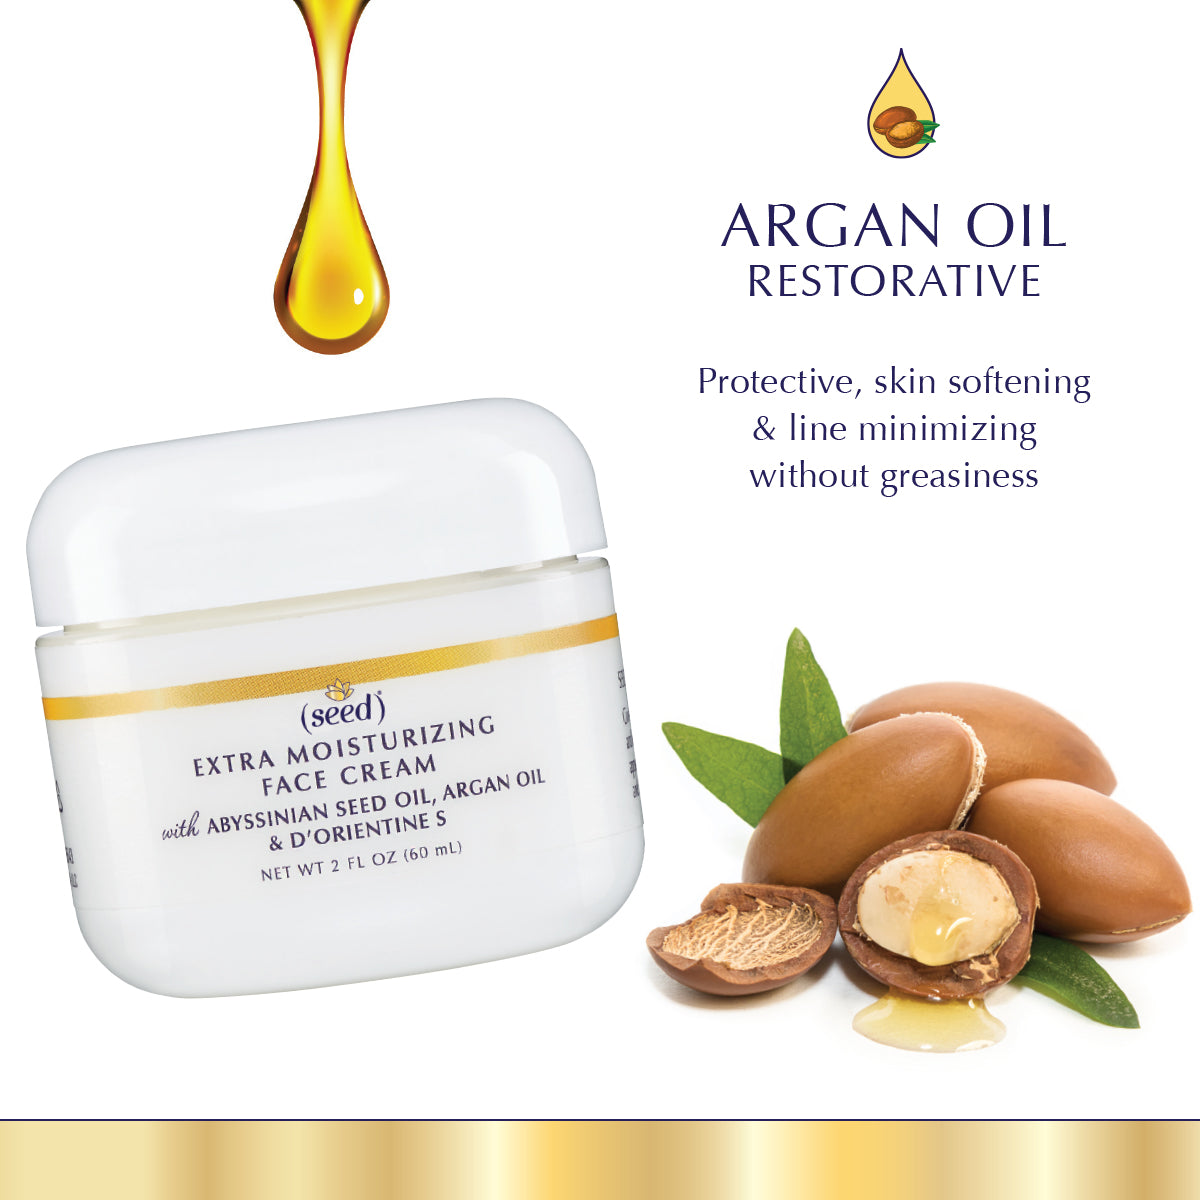 Seed Advanced Botanicals Extra Moisturizing Face Cream features Argan Oil